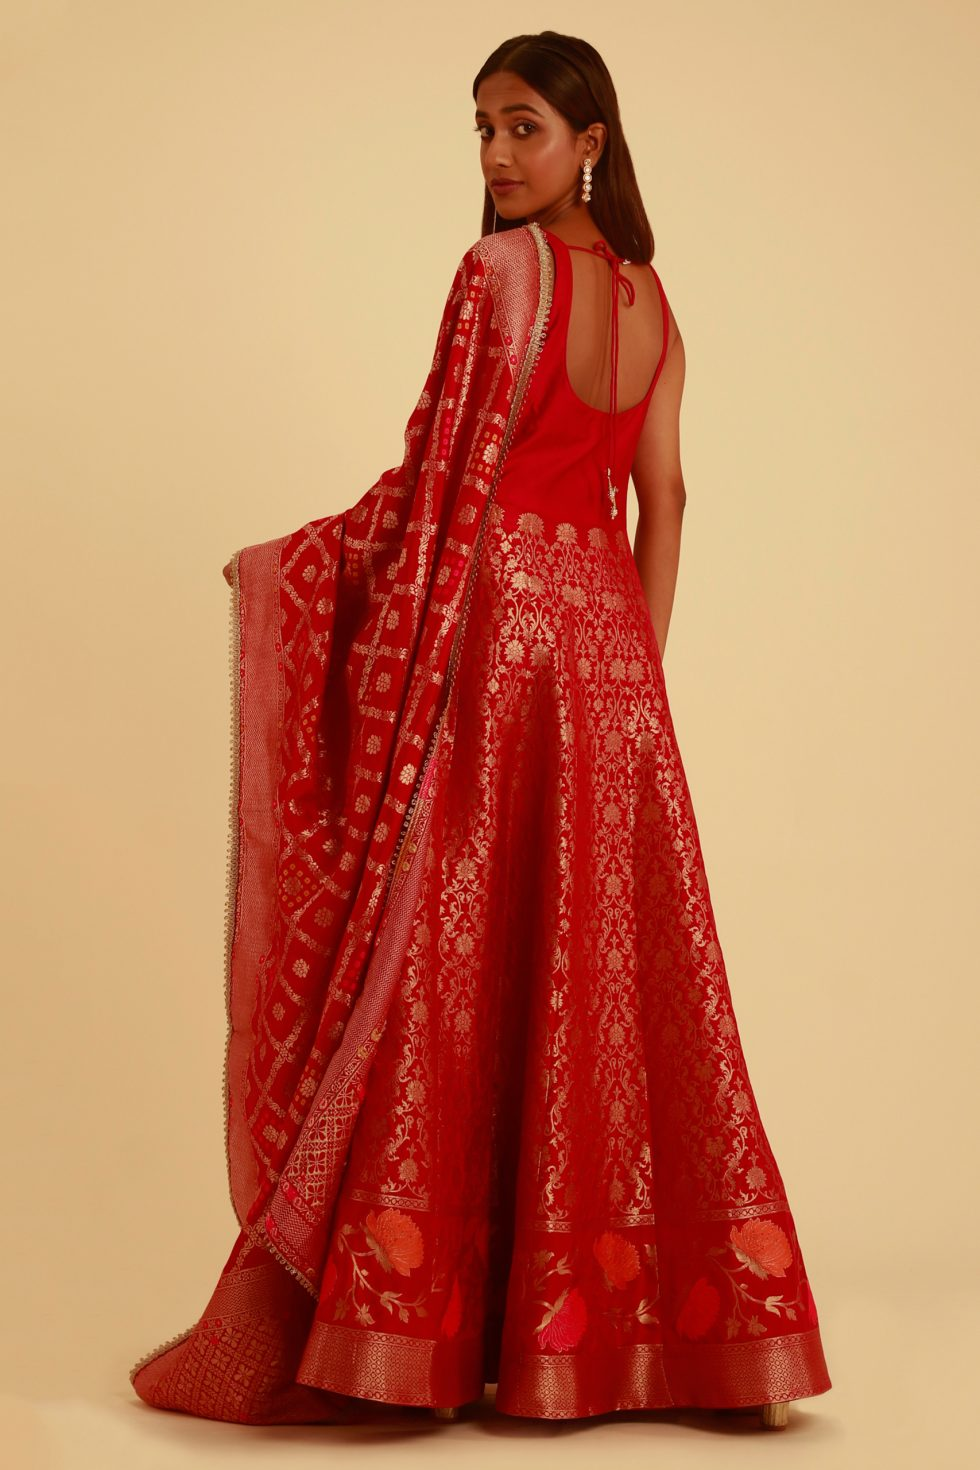 Red banarasi anarkali gown set with a matching dupatta and gold details